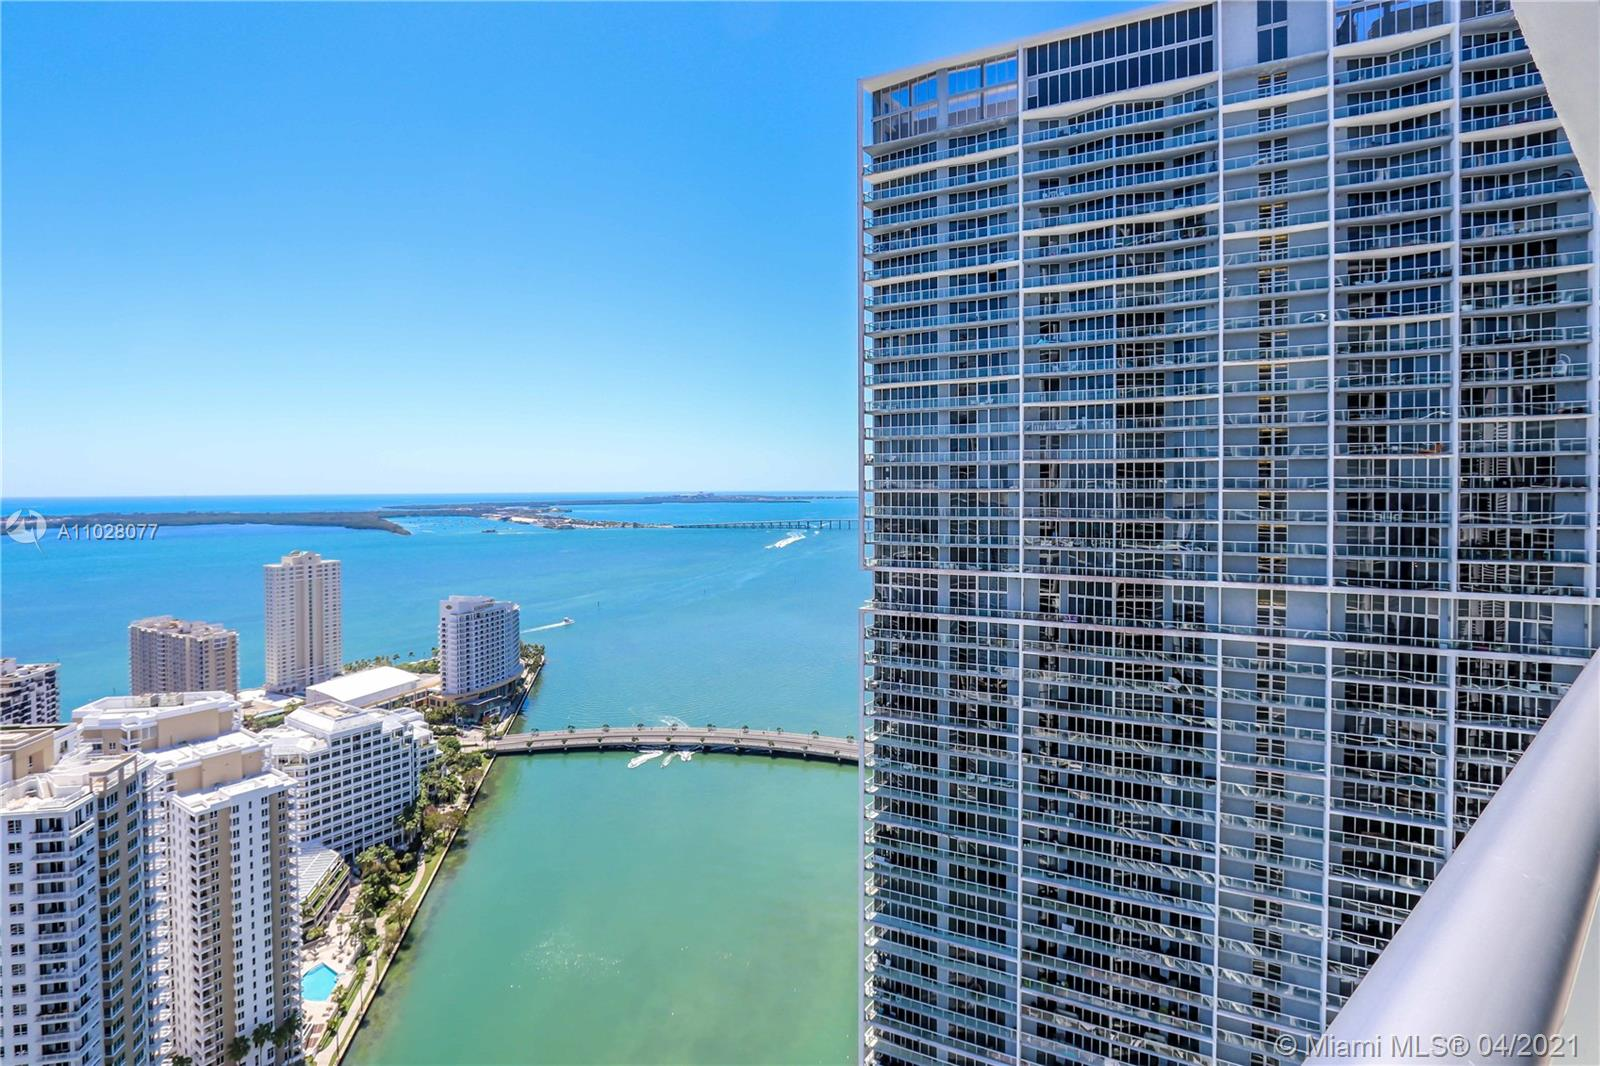 Luxurious High-Rise Condo on Brickell Ave. Unit is on the 44th floor and it offers breathtaking views of the Biscayne Bay, Fisher island and Key Biscayne from its generous size balcony. With a great split floor plan this property offers the ideal layout! ICON4403 is in impeccable and turn key!  Blackout shades in bedrooms, California closets and freshly painted ready to be occupied!  Resort like amenities include: Gym, Olympic size pool, spa, hot tub, restaurant and bar. This property may be offered furnished- furniture sold separately. Property is vacant and easy to show! Call LA for additional info!